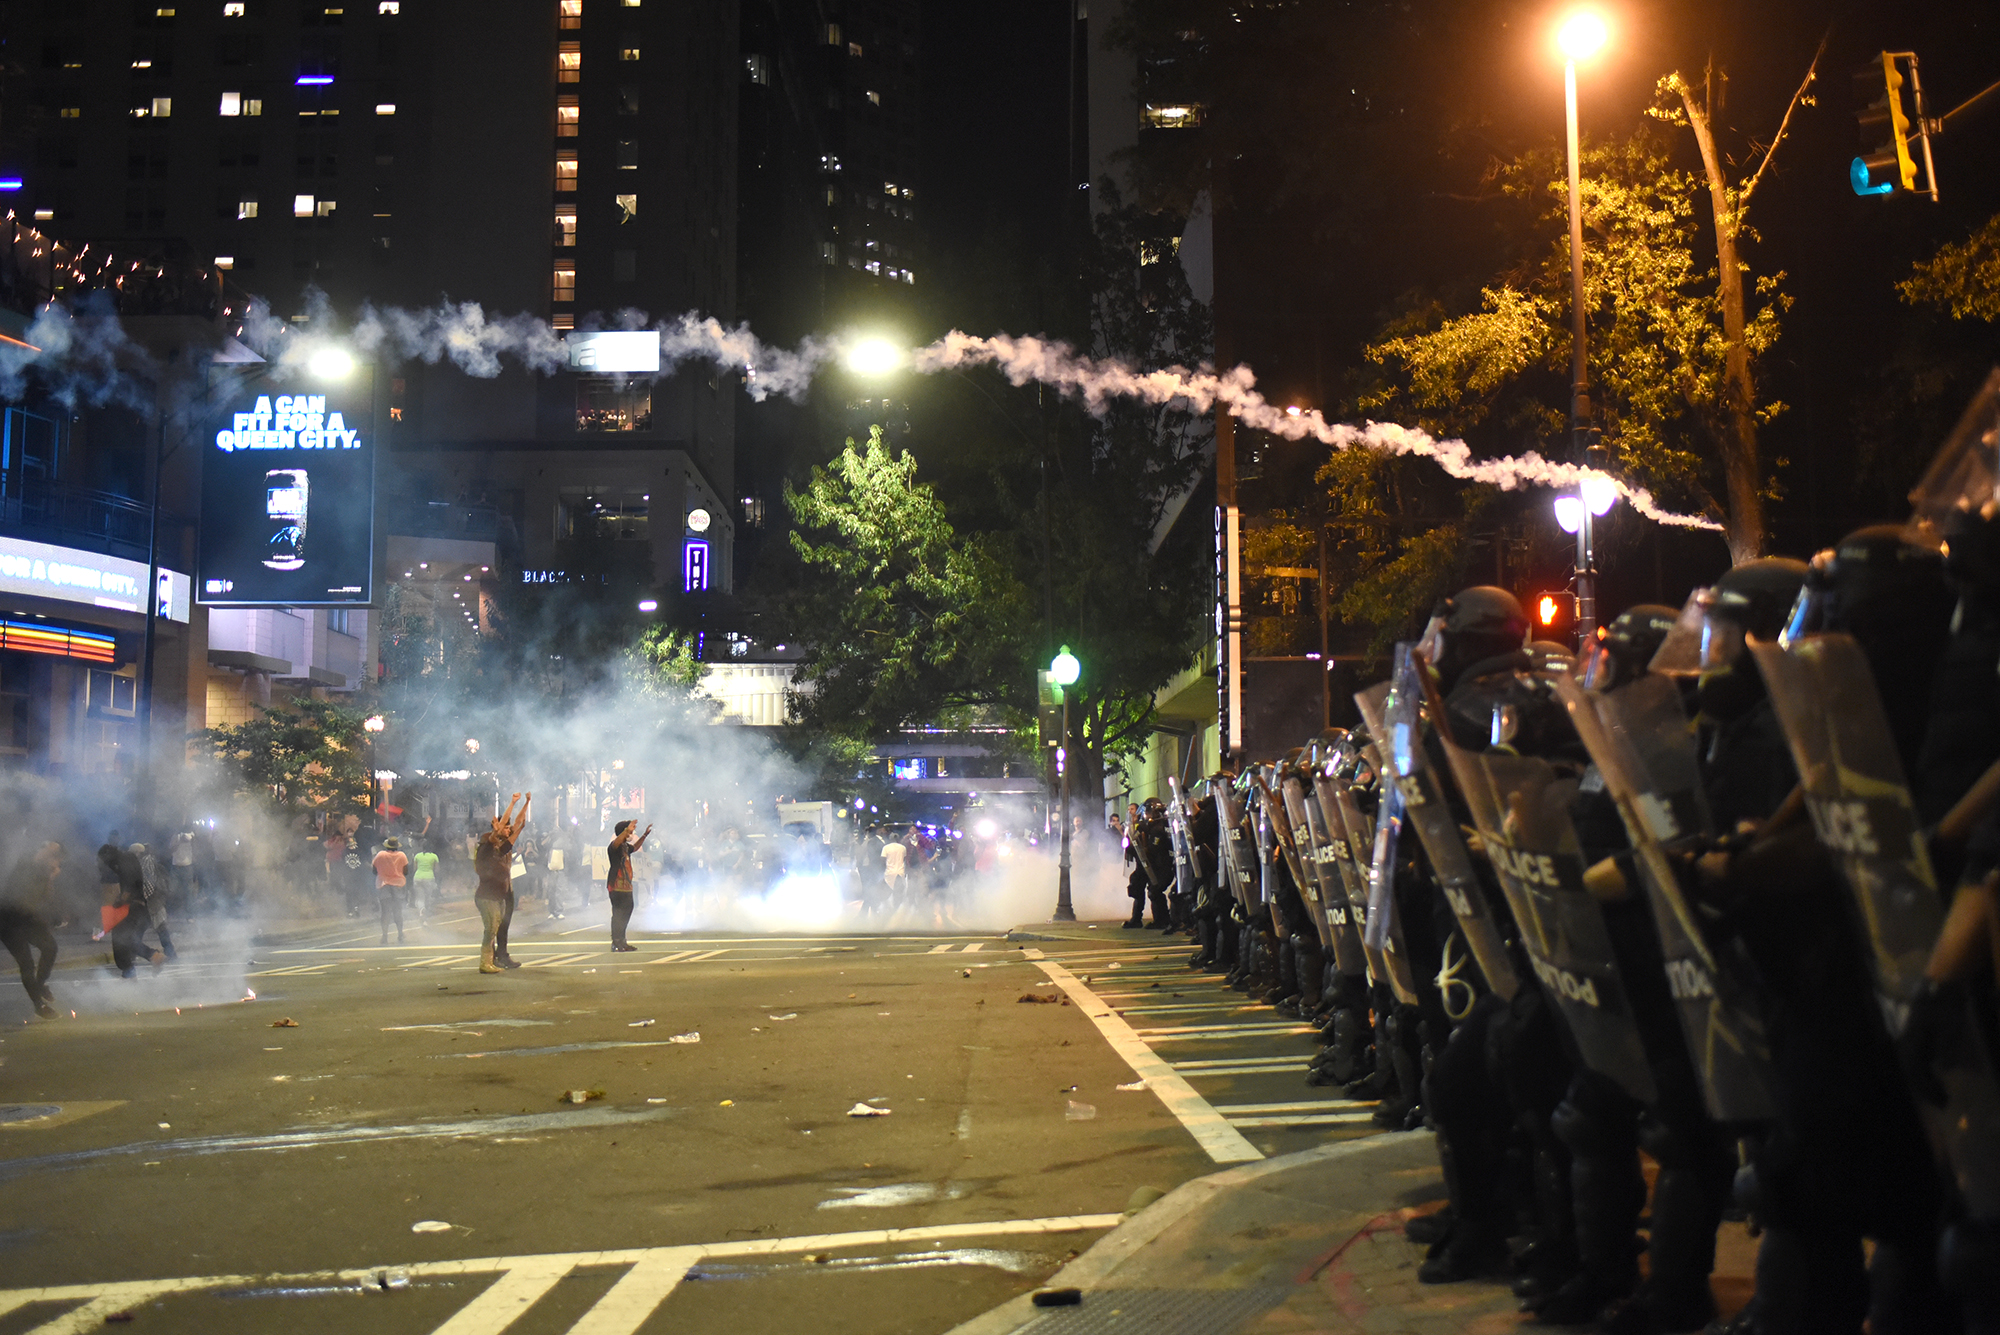 Tear gas is used as protesters confront riot police officers in Charlotte, North Carolina, USA, 21 September 2016. North Carolina governor Pat McCrory declared a state of emergency after protesters took to the streets of Charlotte, North Carolina, for the second consecutive night to demonstrate against the fatal shooting of African-American Keith Lamont Scott by police officers.